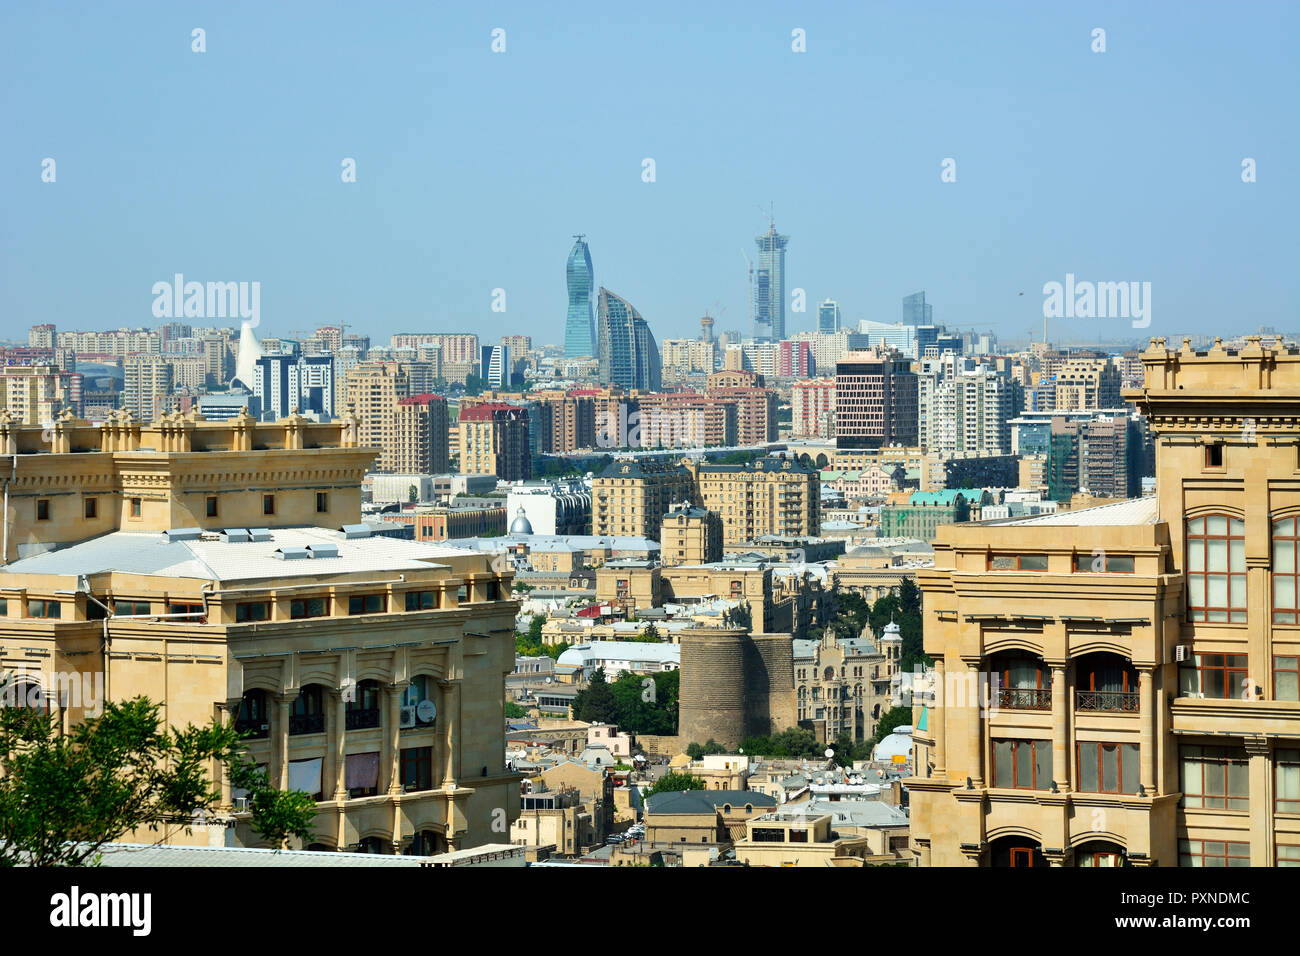 The city center of Baku, Azerbaijan - Stock Image